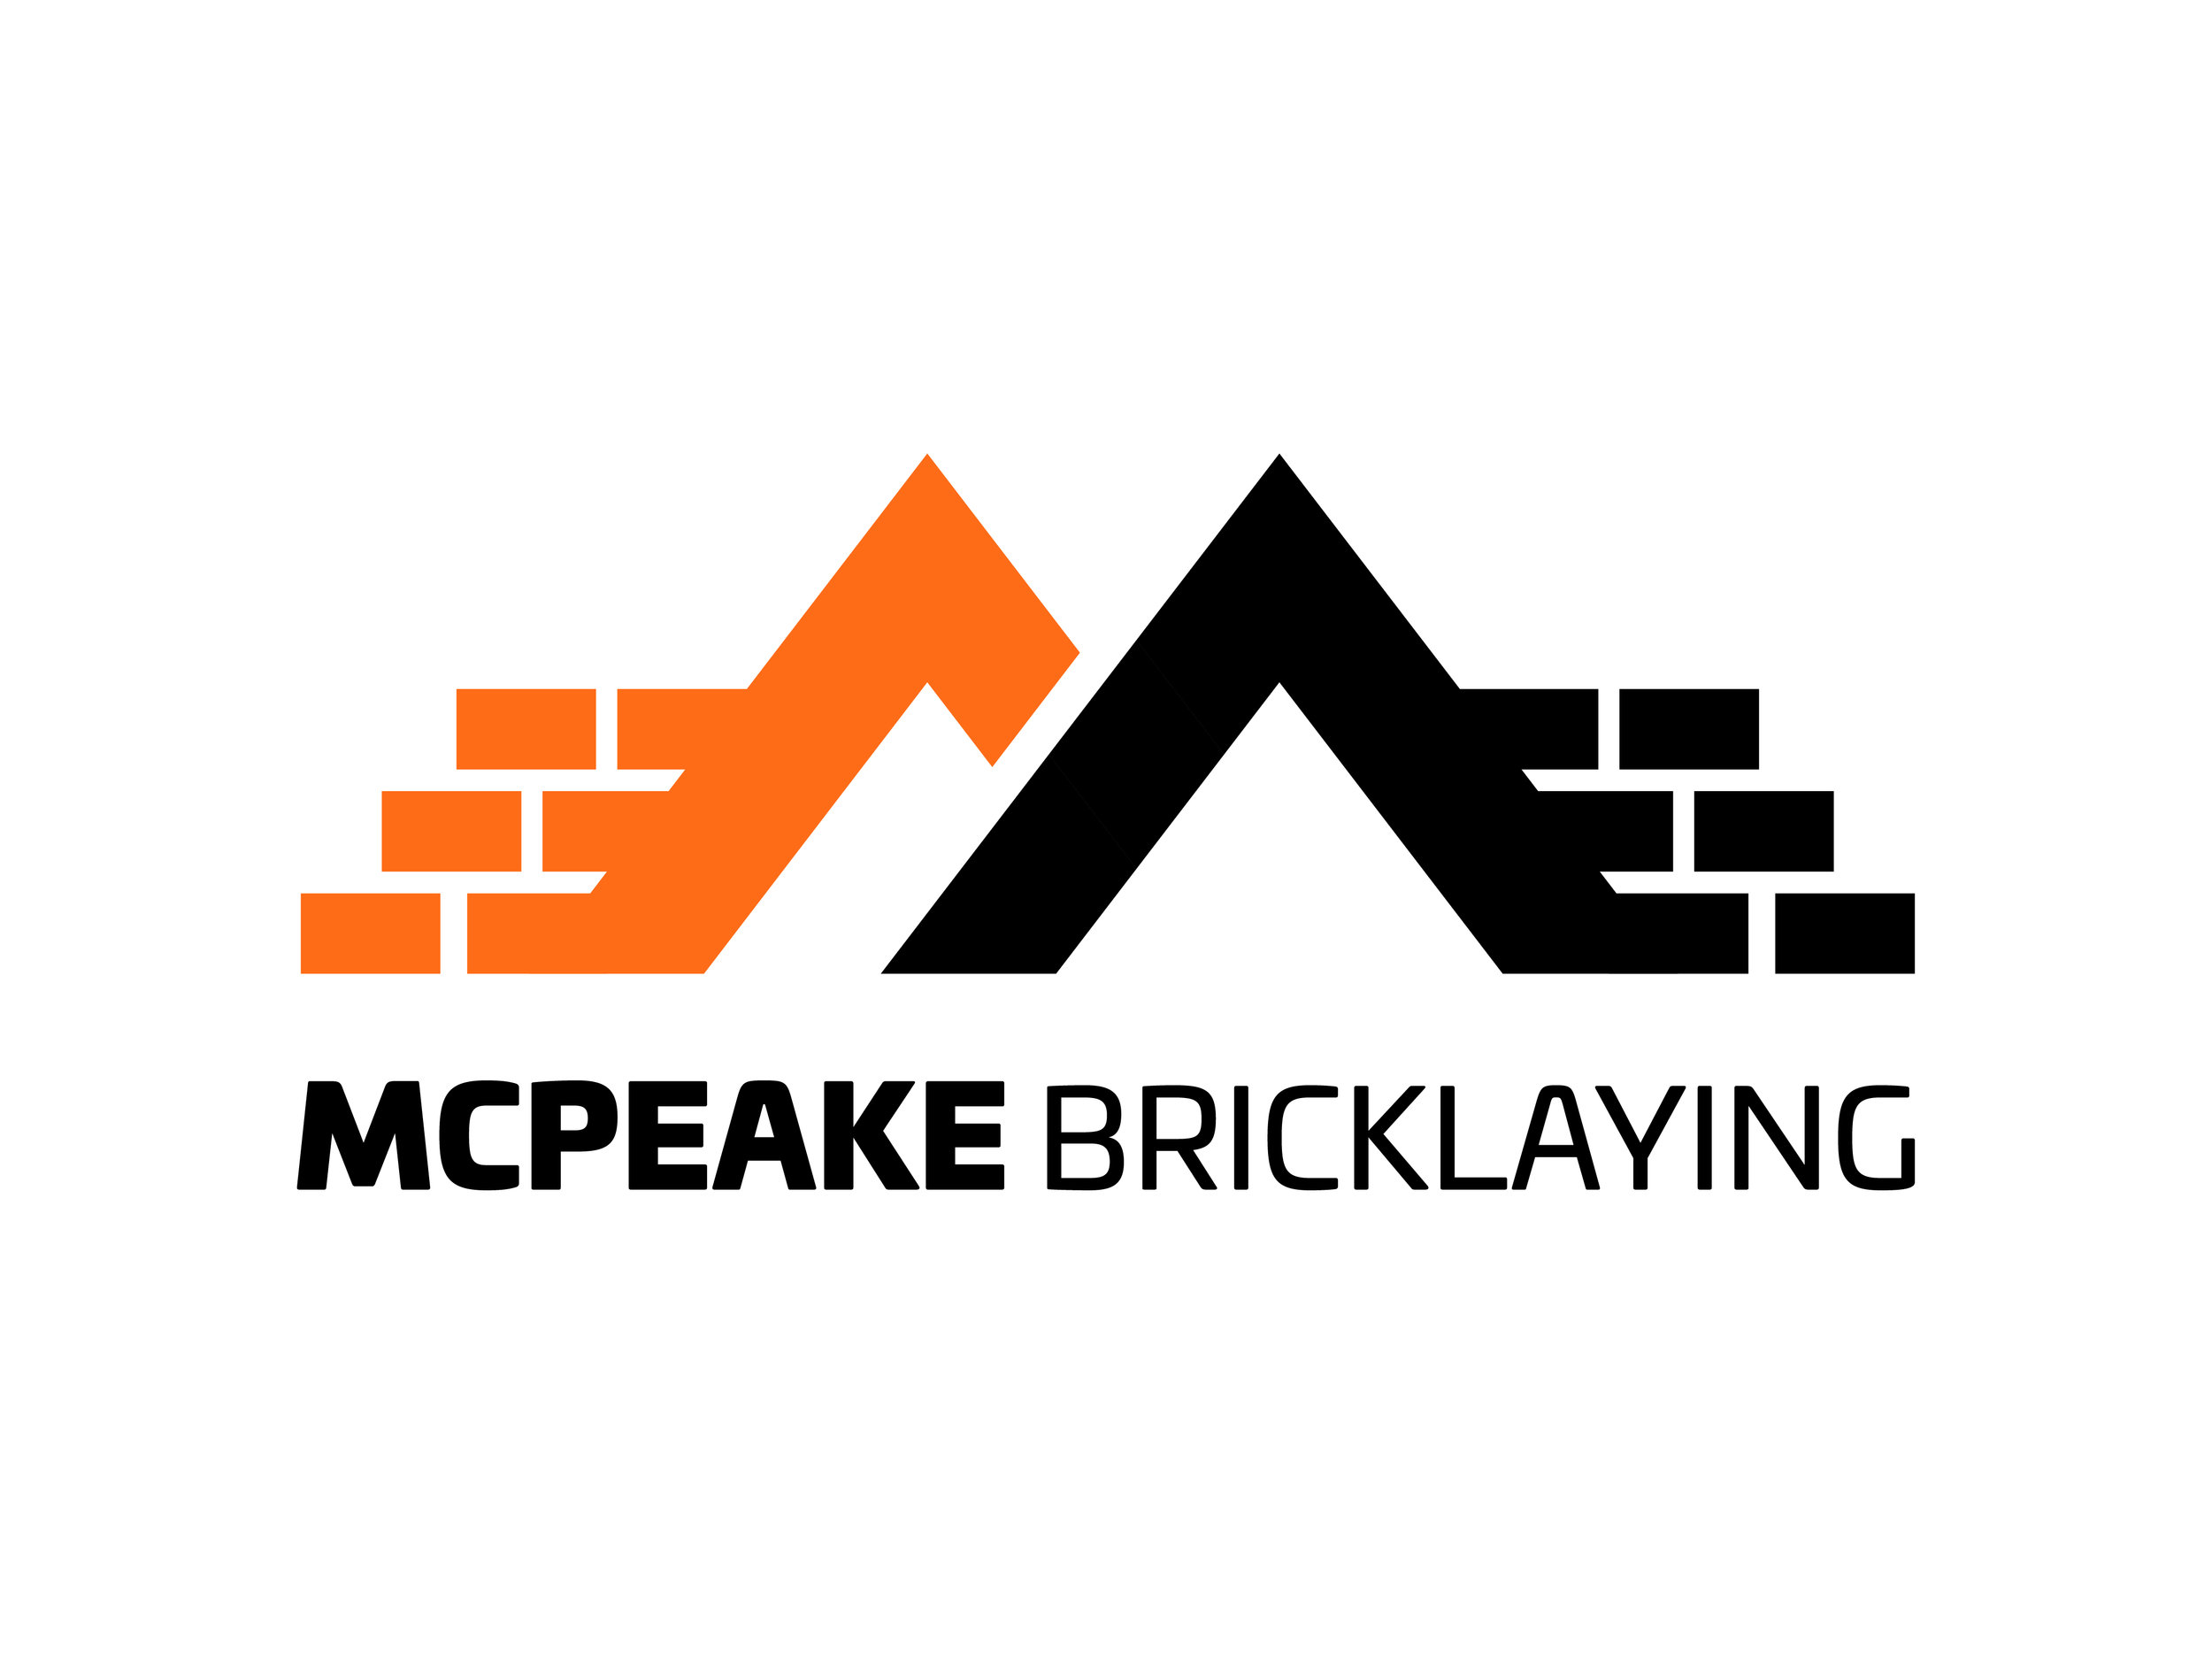 McPeake Bricklaying Logo Design